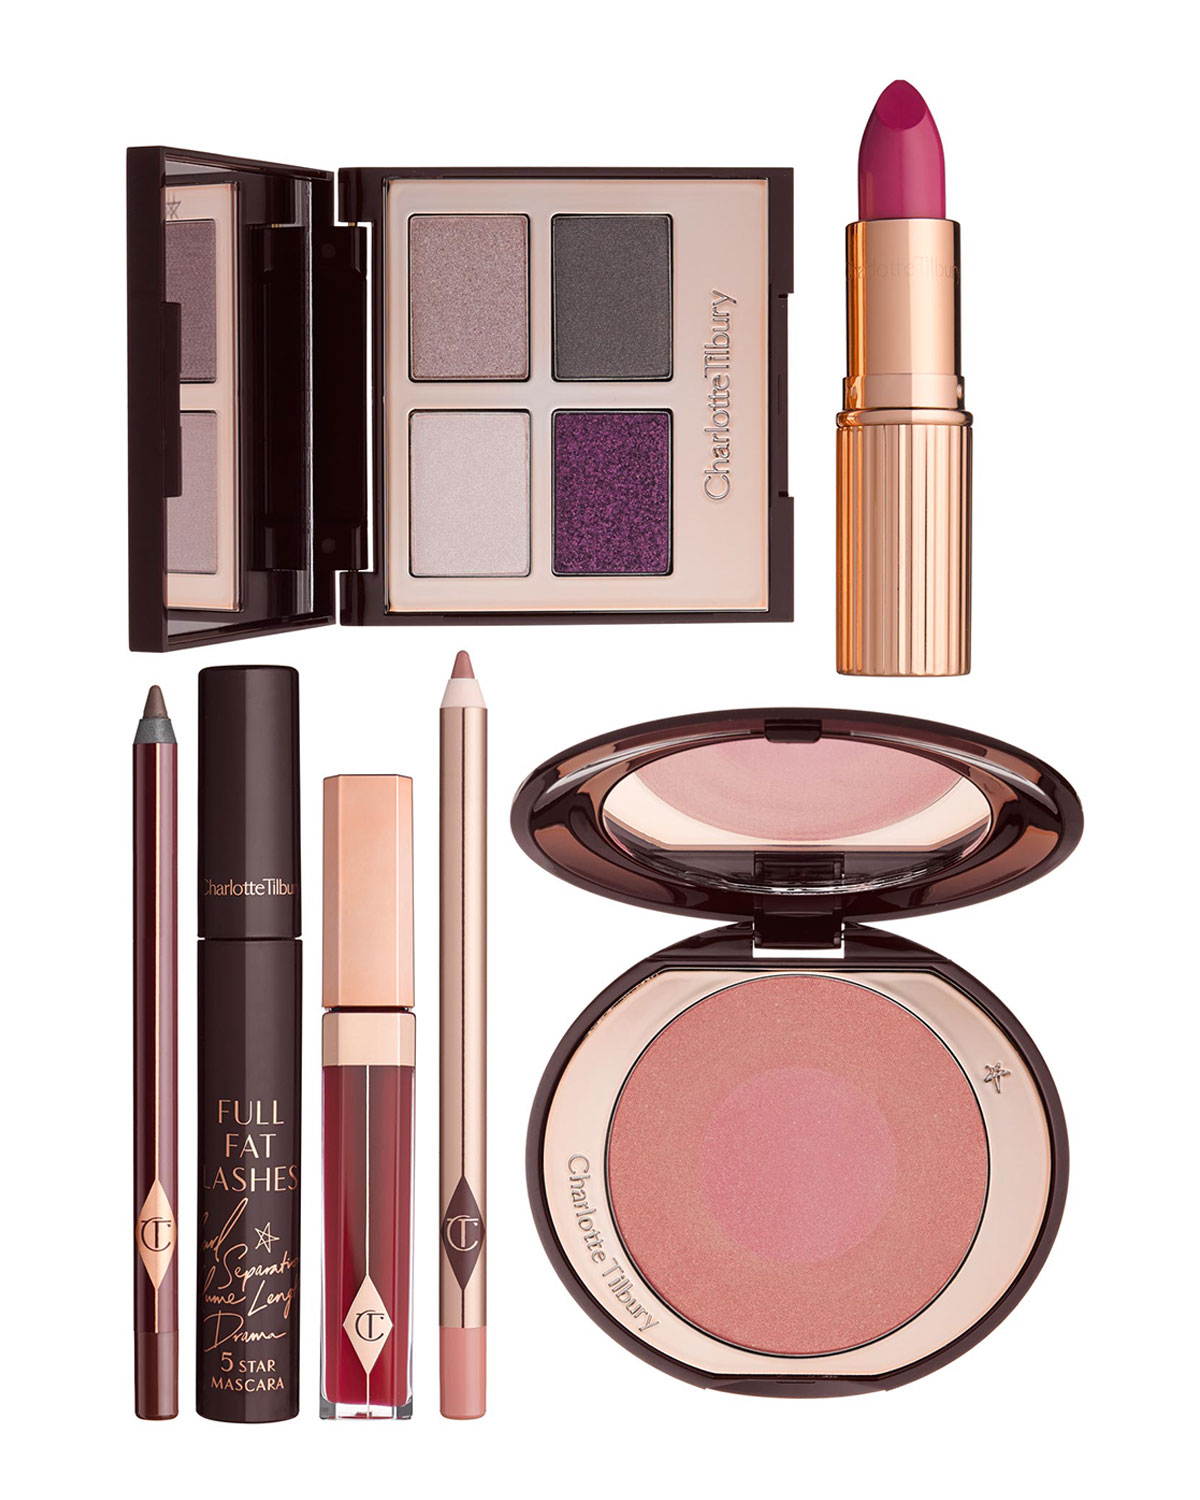 CHARLOTTE TILBURY The Glamour Muse Look Set - No Color